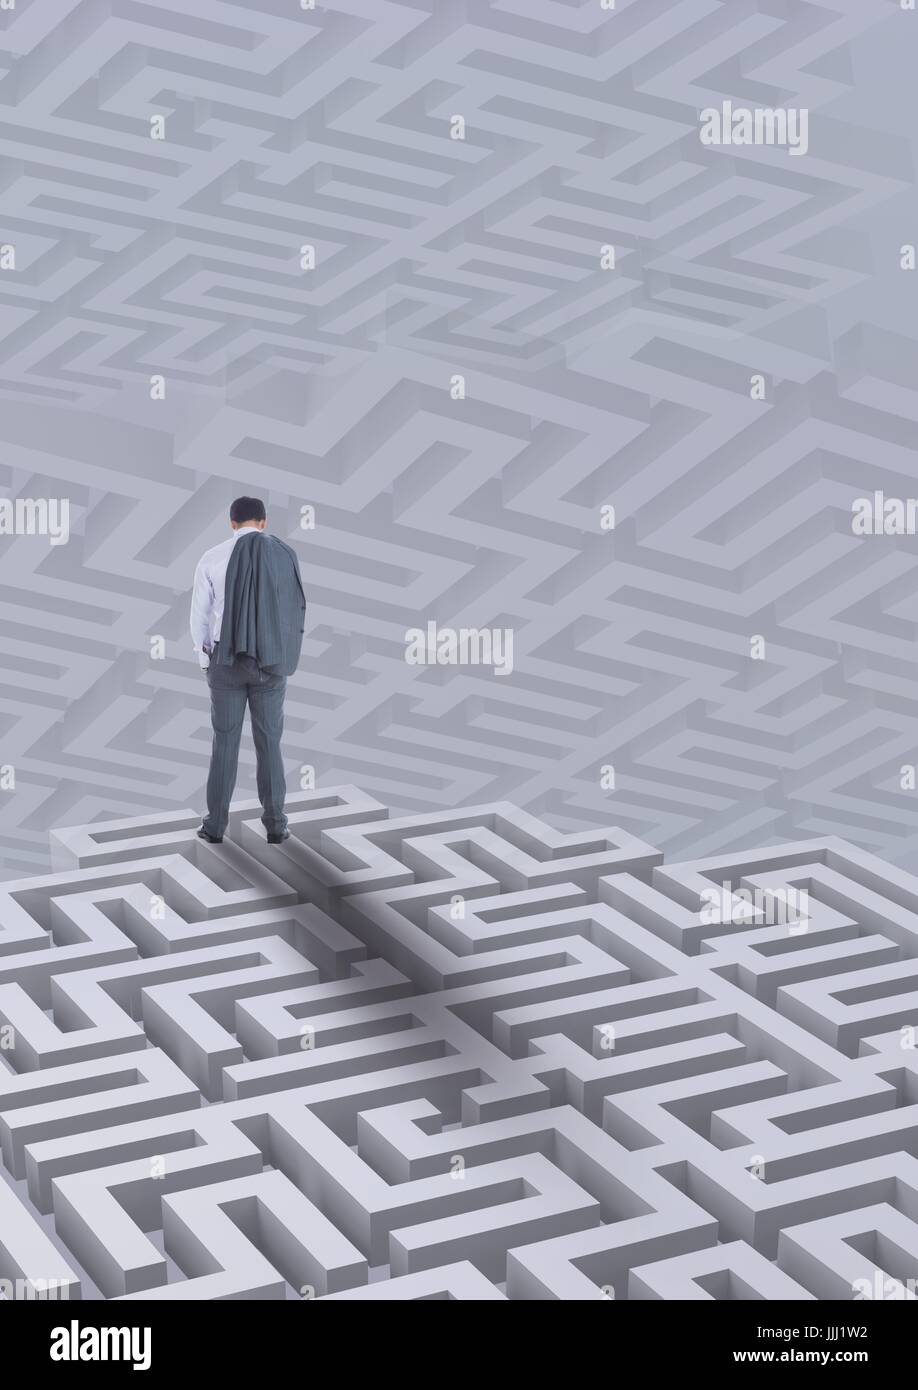 Man standing on a 3D maze against background with mazes - Stock Image